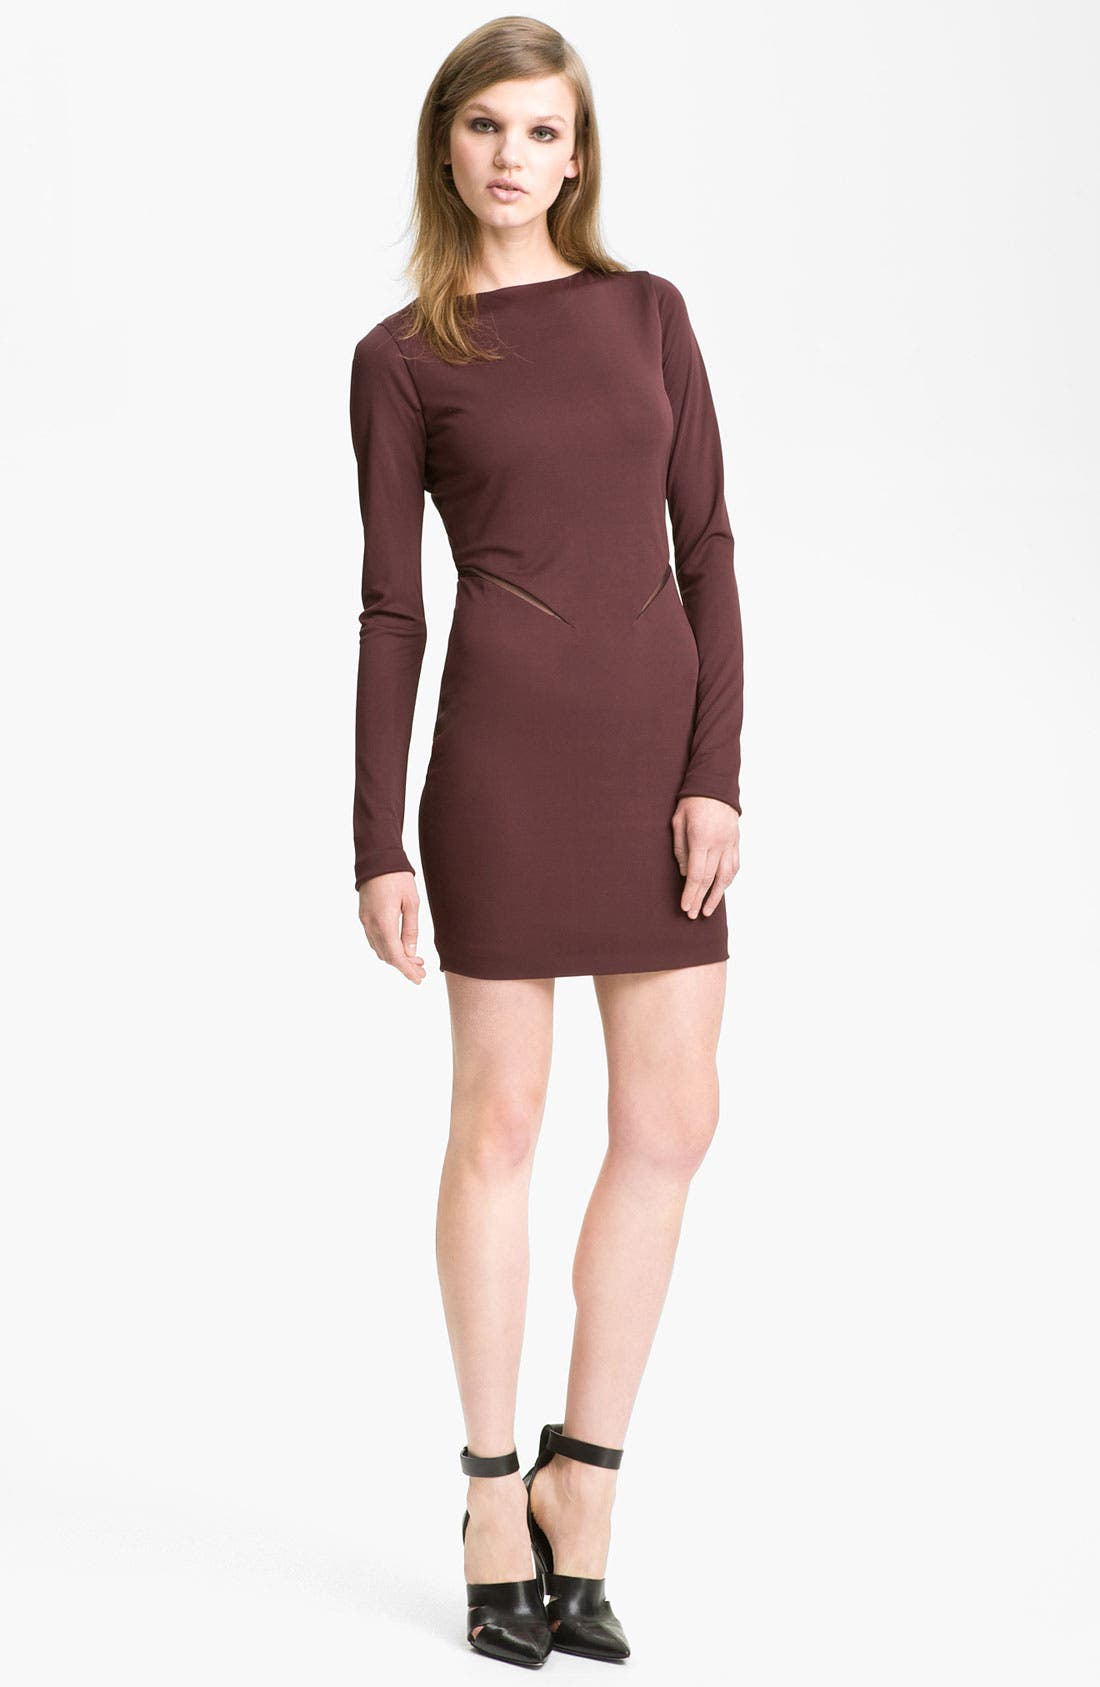 Main Image - T by Alexander Wang Mesh Inset Knit Sheath Dress